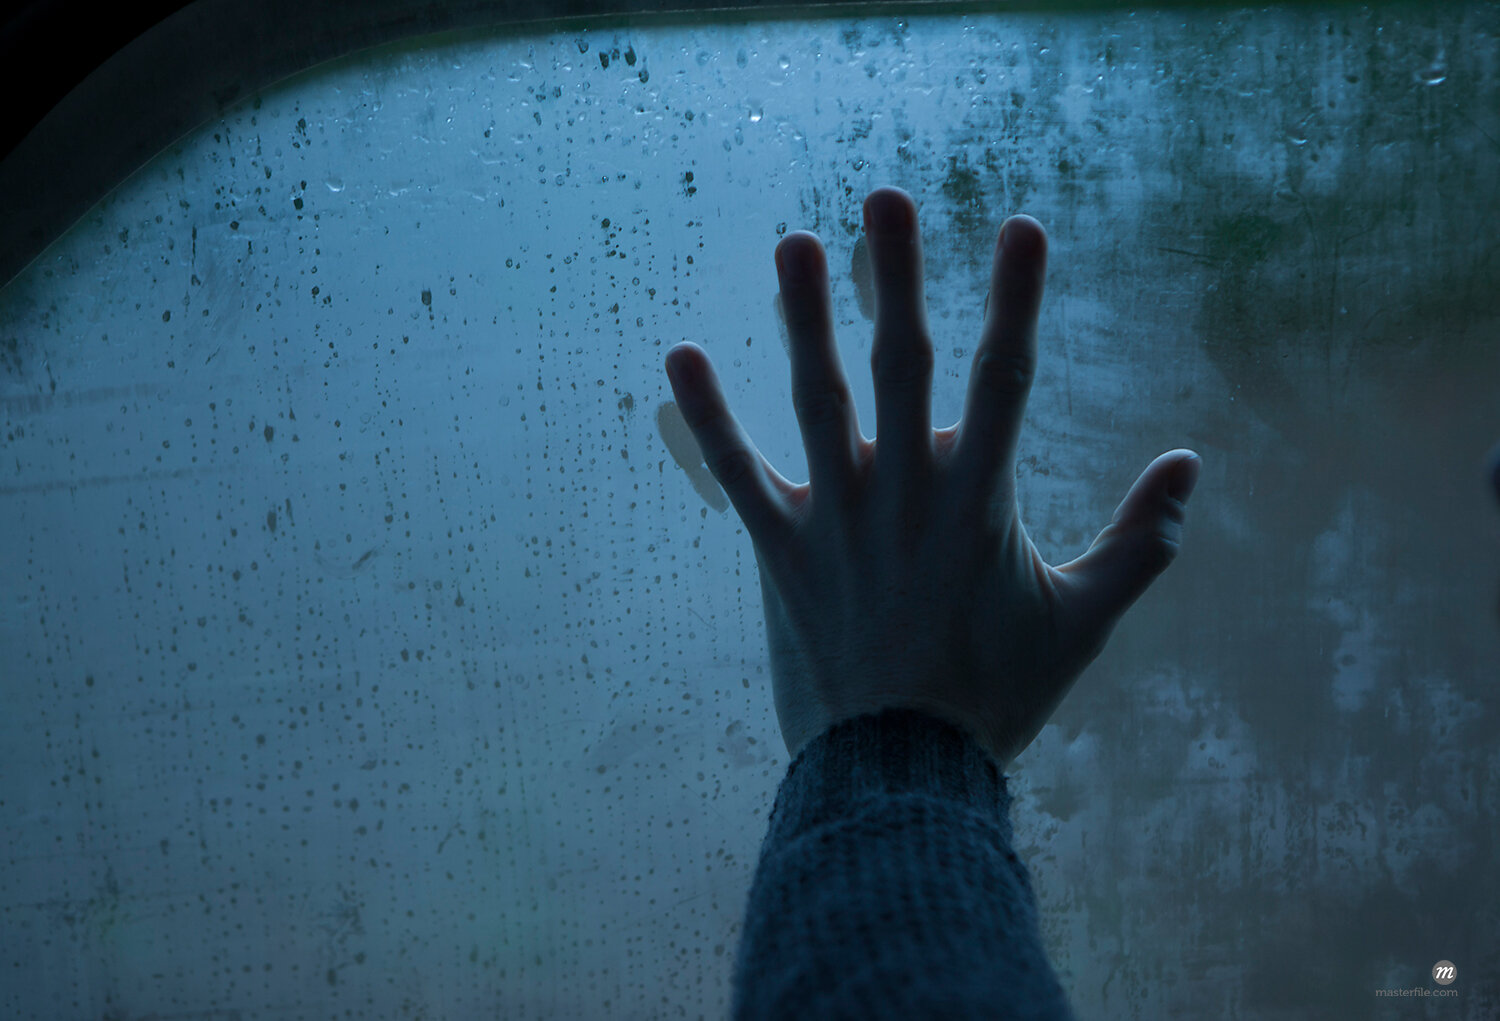 Hand on wet window © Nathan Jones